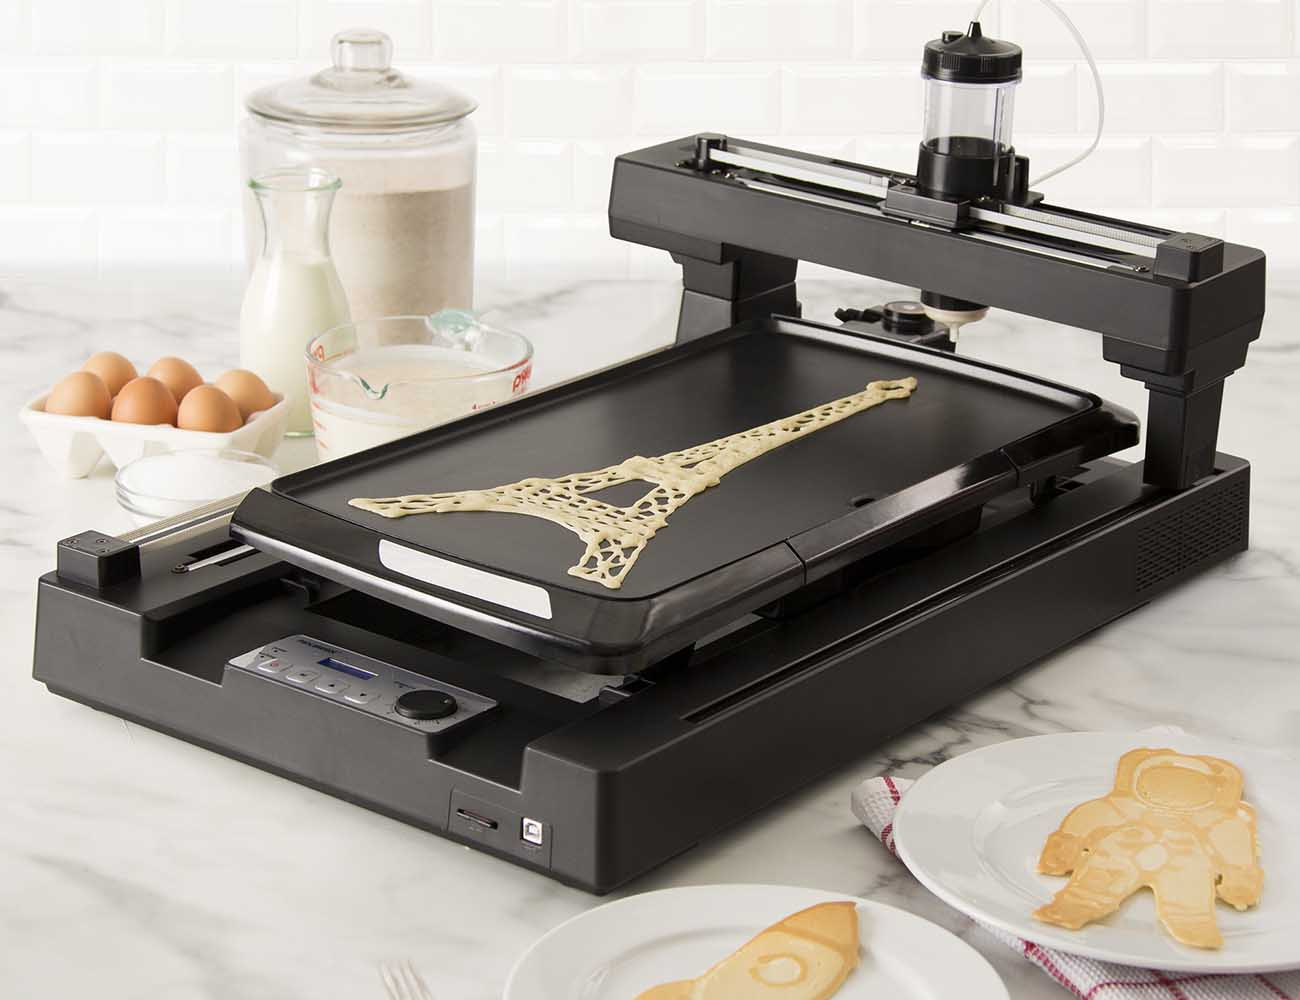 PancakeBot – The World's First Pancake Printer